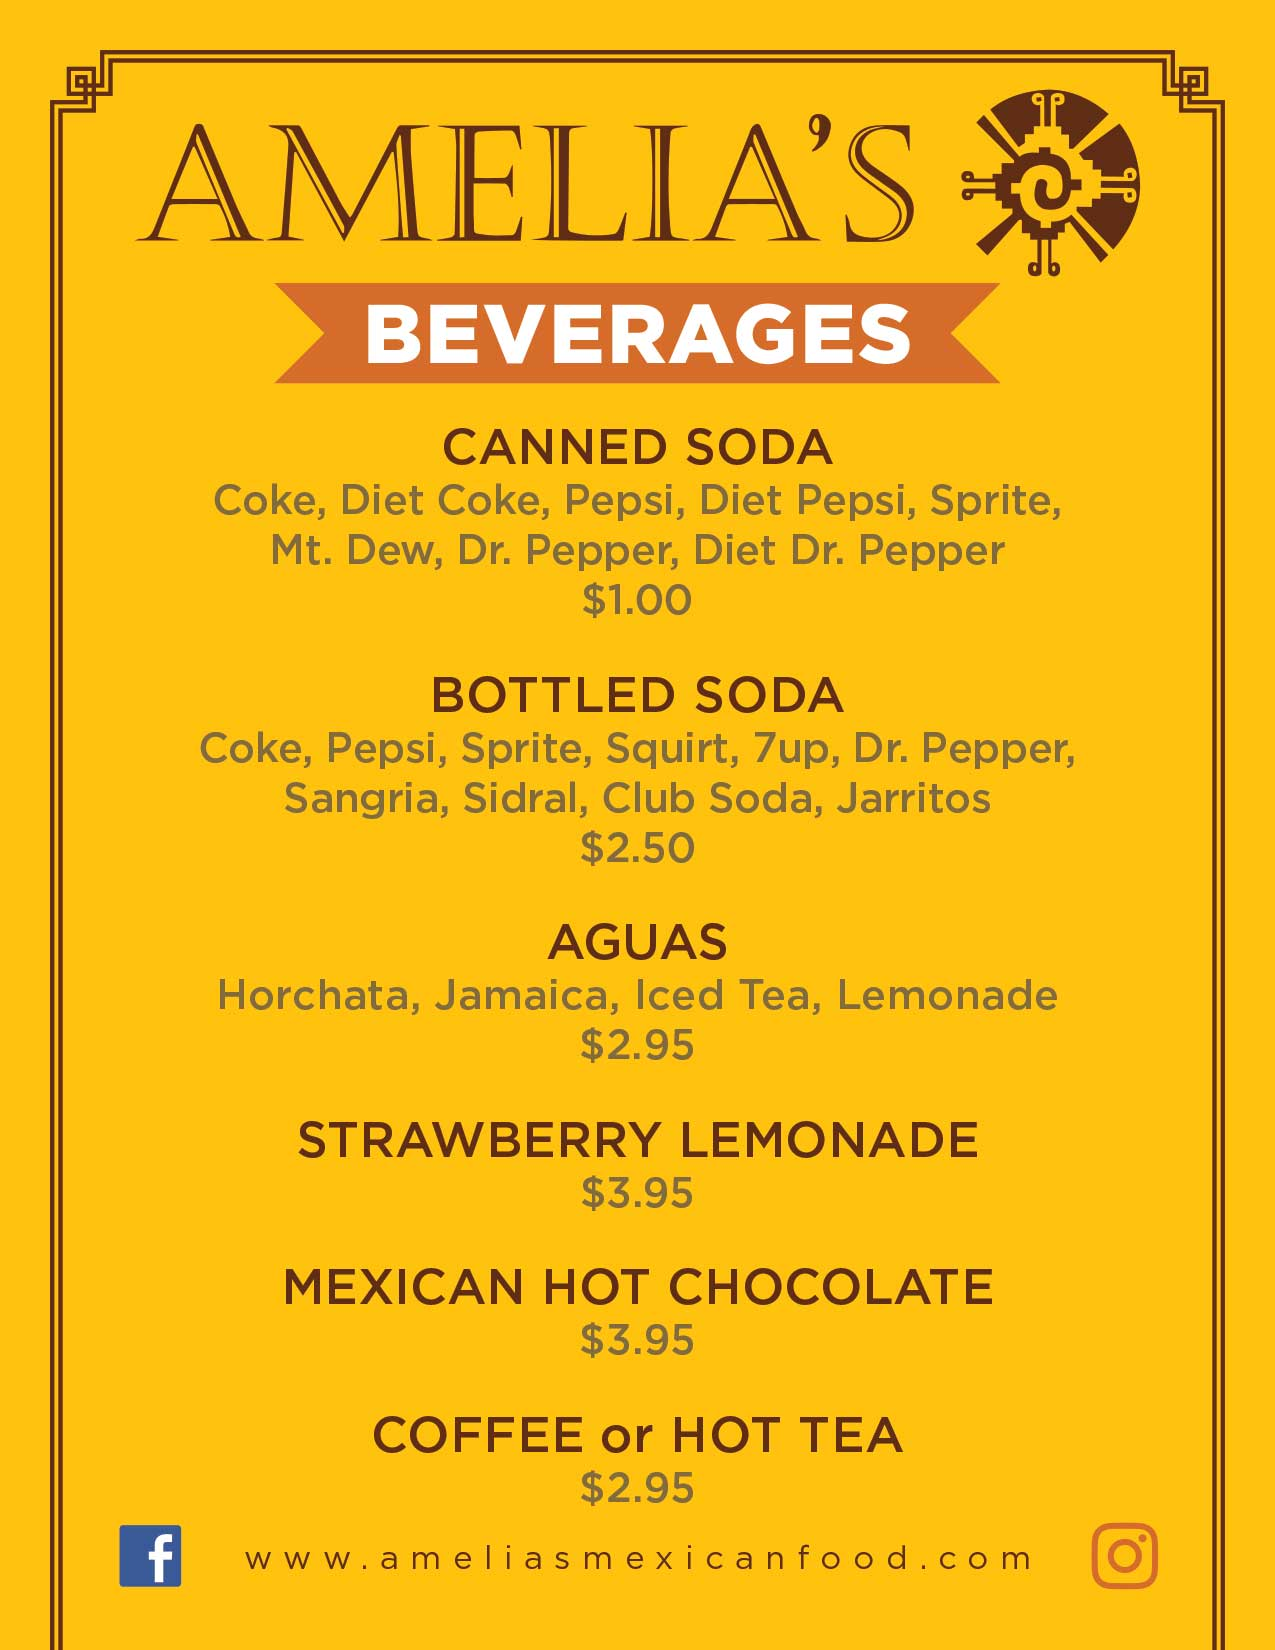 image of softdrink specials